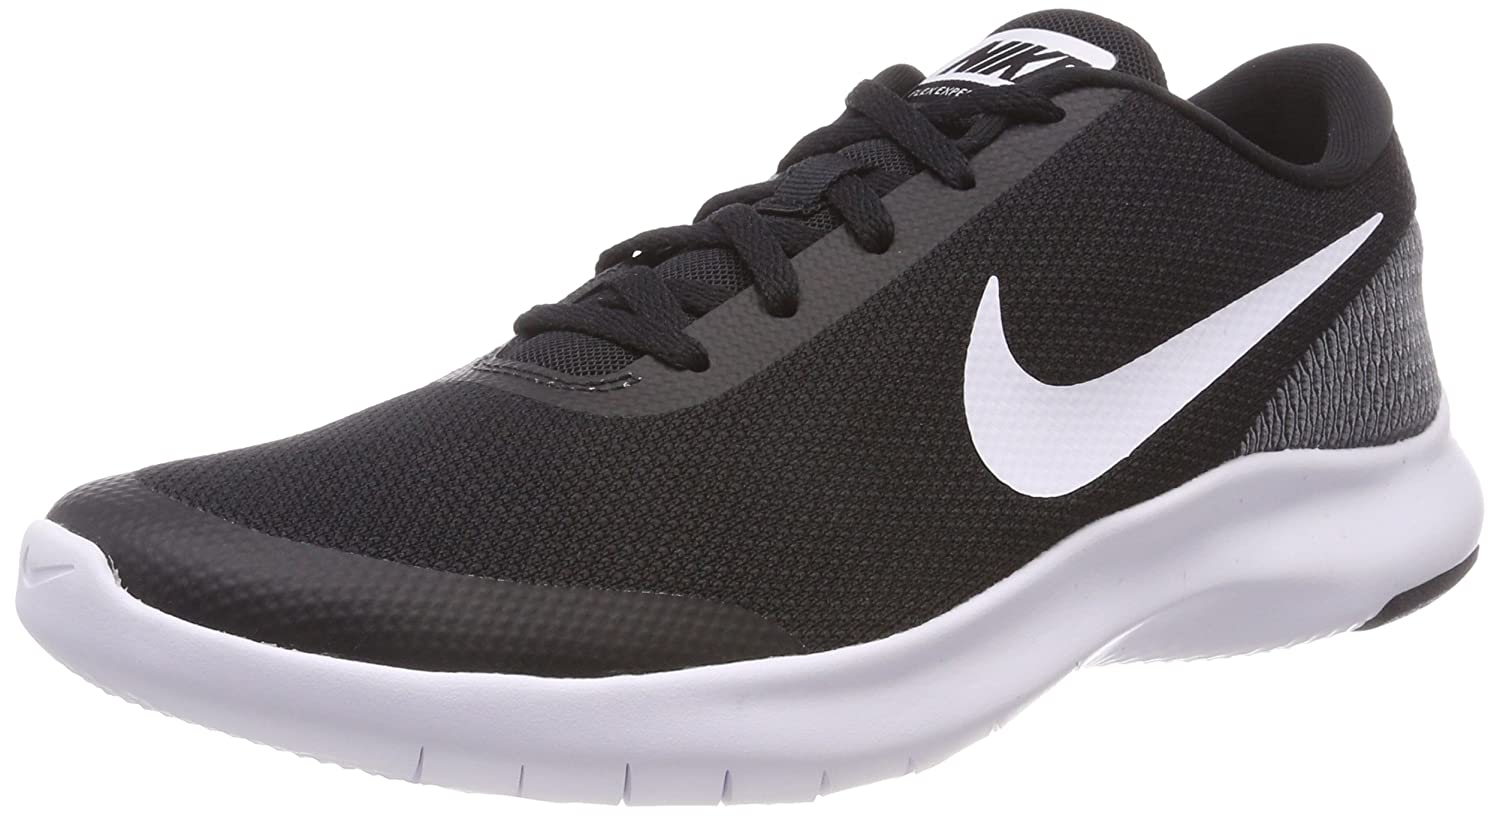 NIKE Women's Flex Experience 7 Running Shoe B071444W55 10 B(M) US|Black/White-white